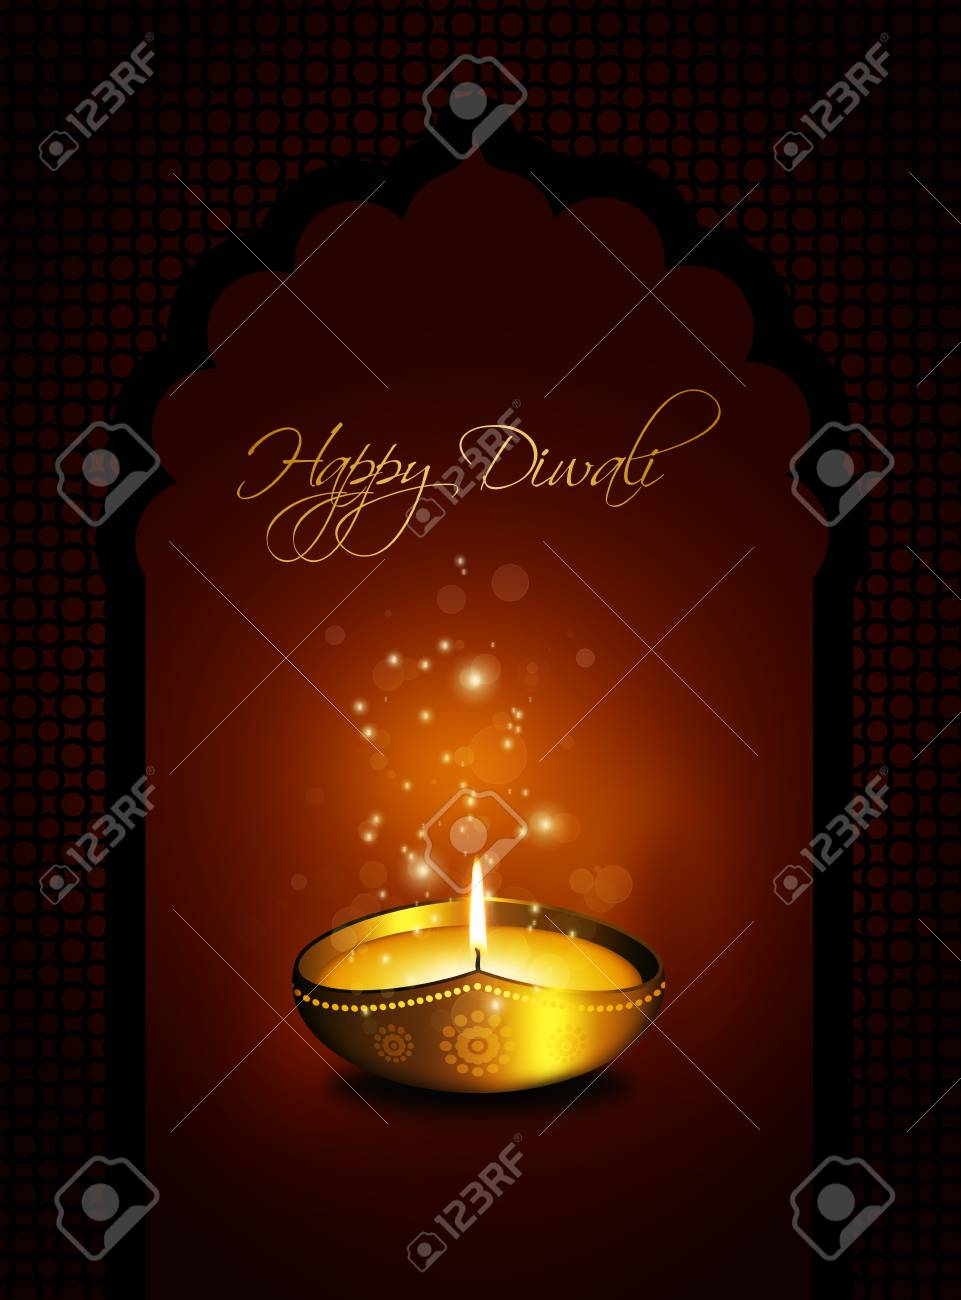 Oil Lamp With Diwali Greetings Over Gold Stock Photo Picture And